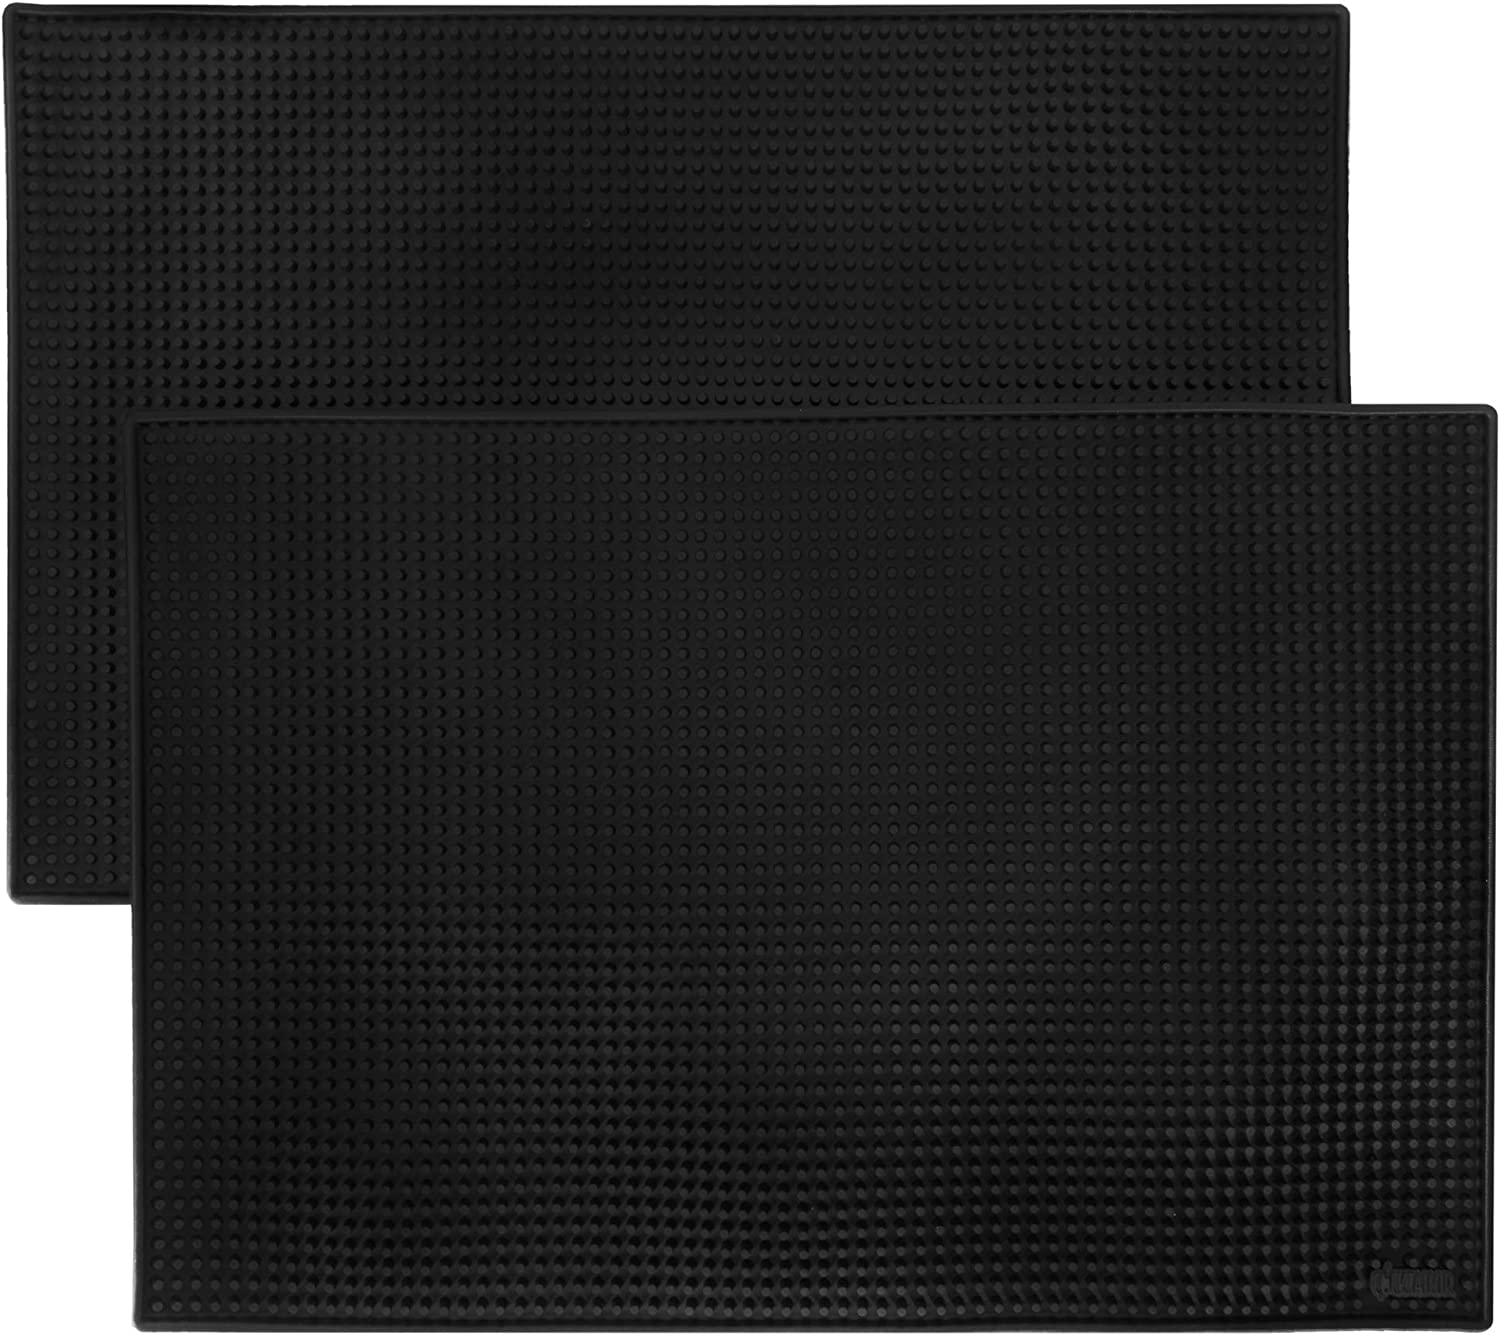 "18"" x 12"" Black Bar Mats, 2-pack - Professional Bartender's Non-Slip Drink Cocktail Mixing Service Mat - Accessories for Industrial & Home Kitchen, Bartops, Coffee Bars, Food Trucks, Restaurants"